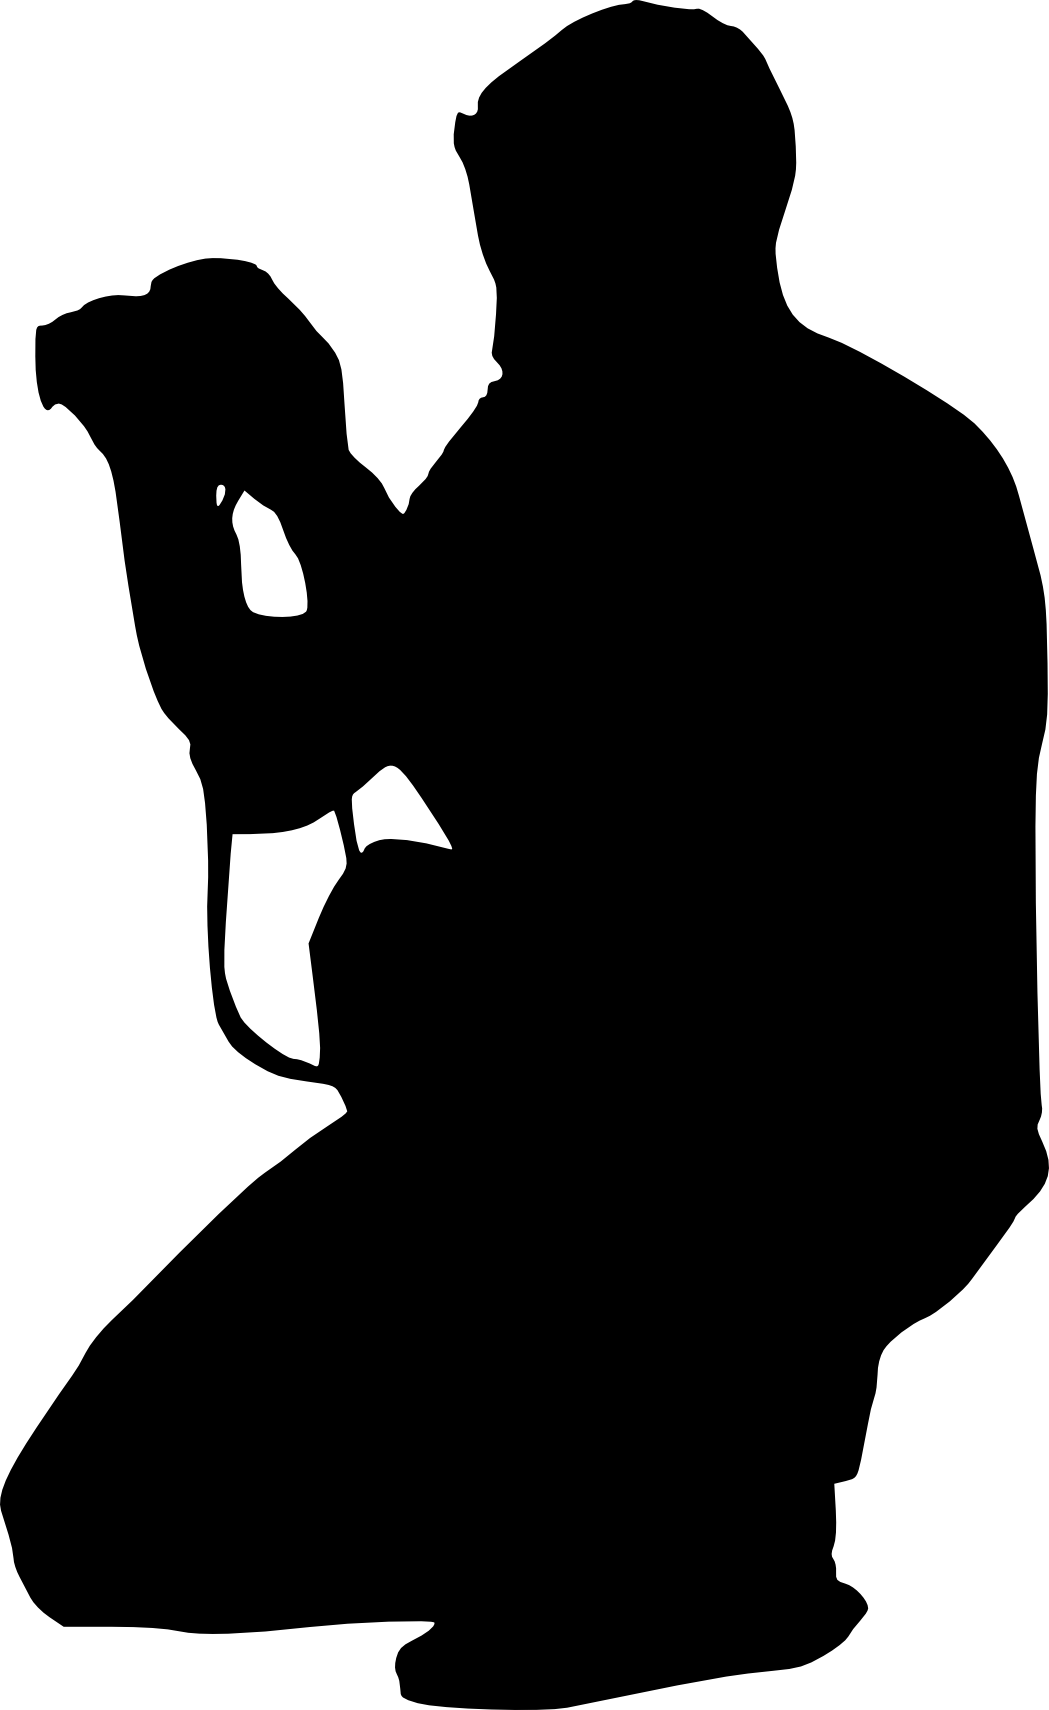 1049x1710 13 Photographer With Camera Silhouette (Png Transparent)